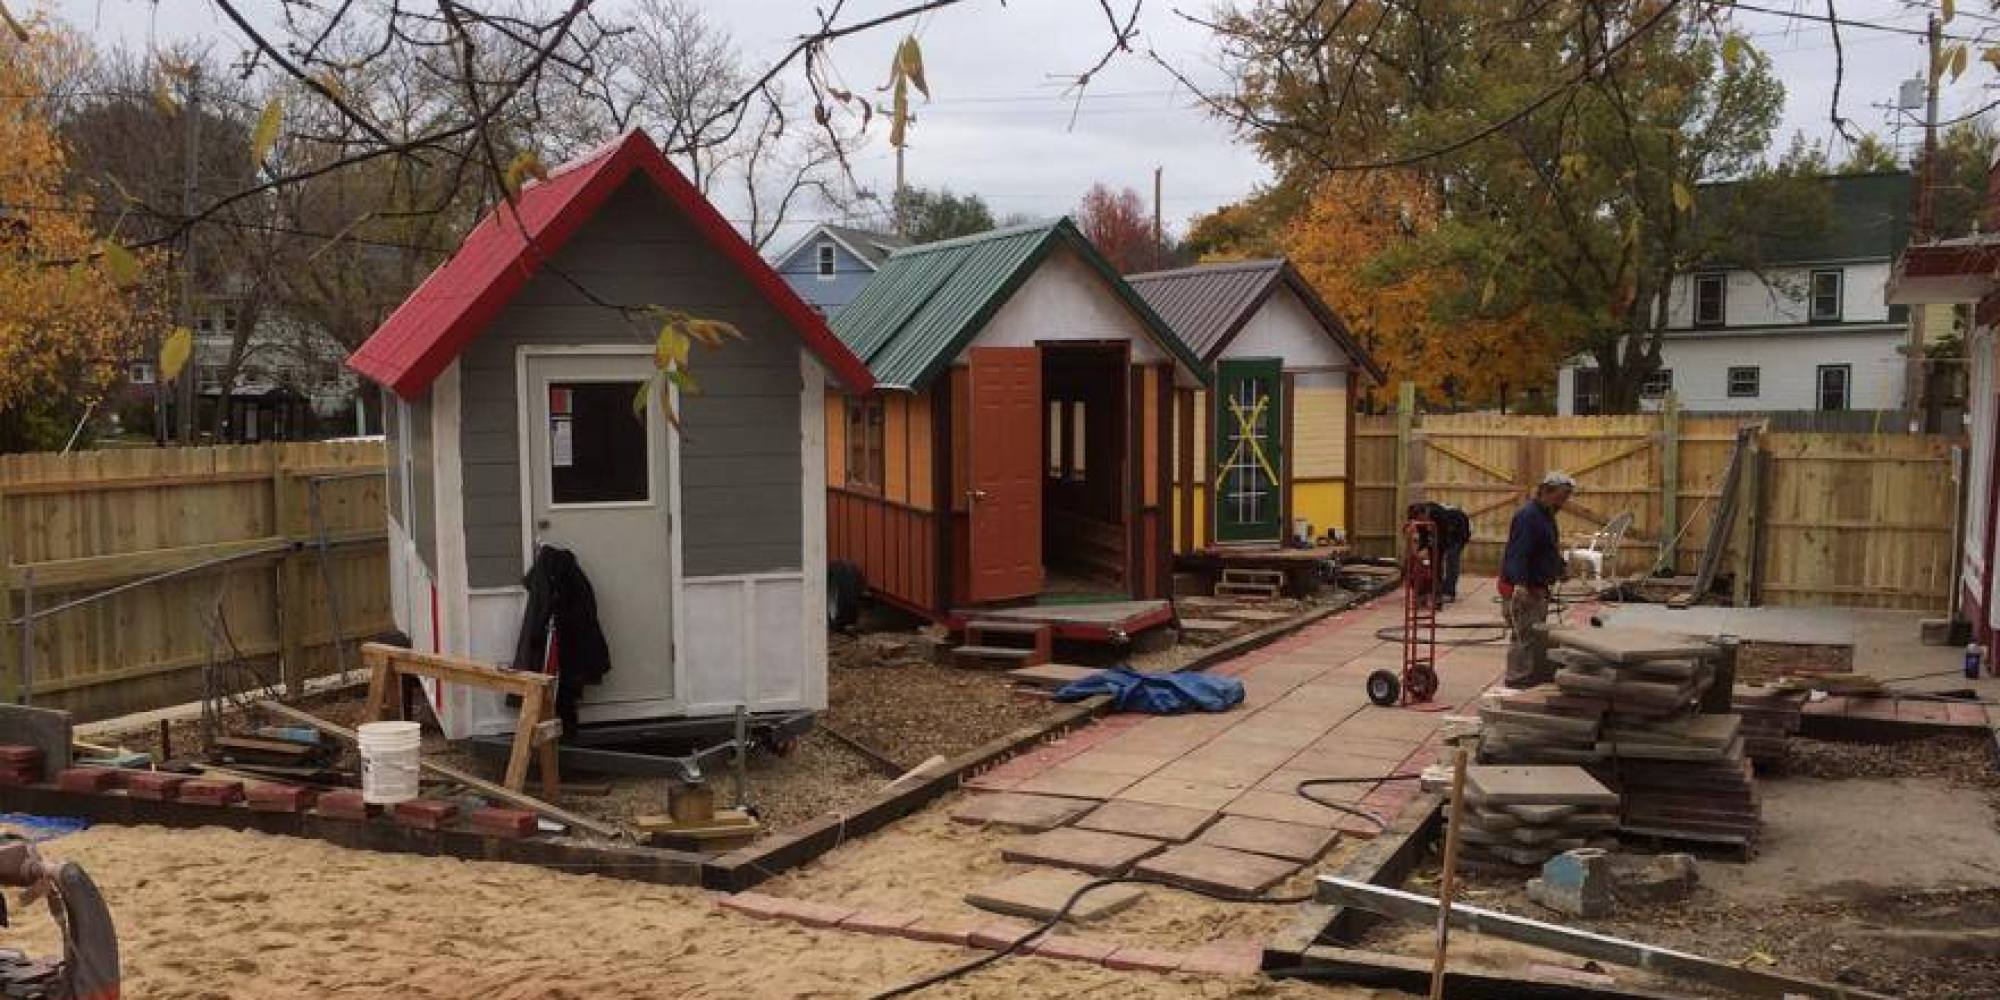 Outstanding Tiny Houses For Homeless People Put Roofs Over Heads In Time For Largest Home Design Picture Inspirations Pitcheantrous